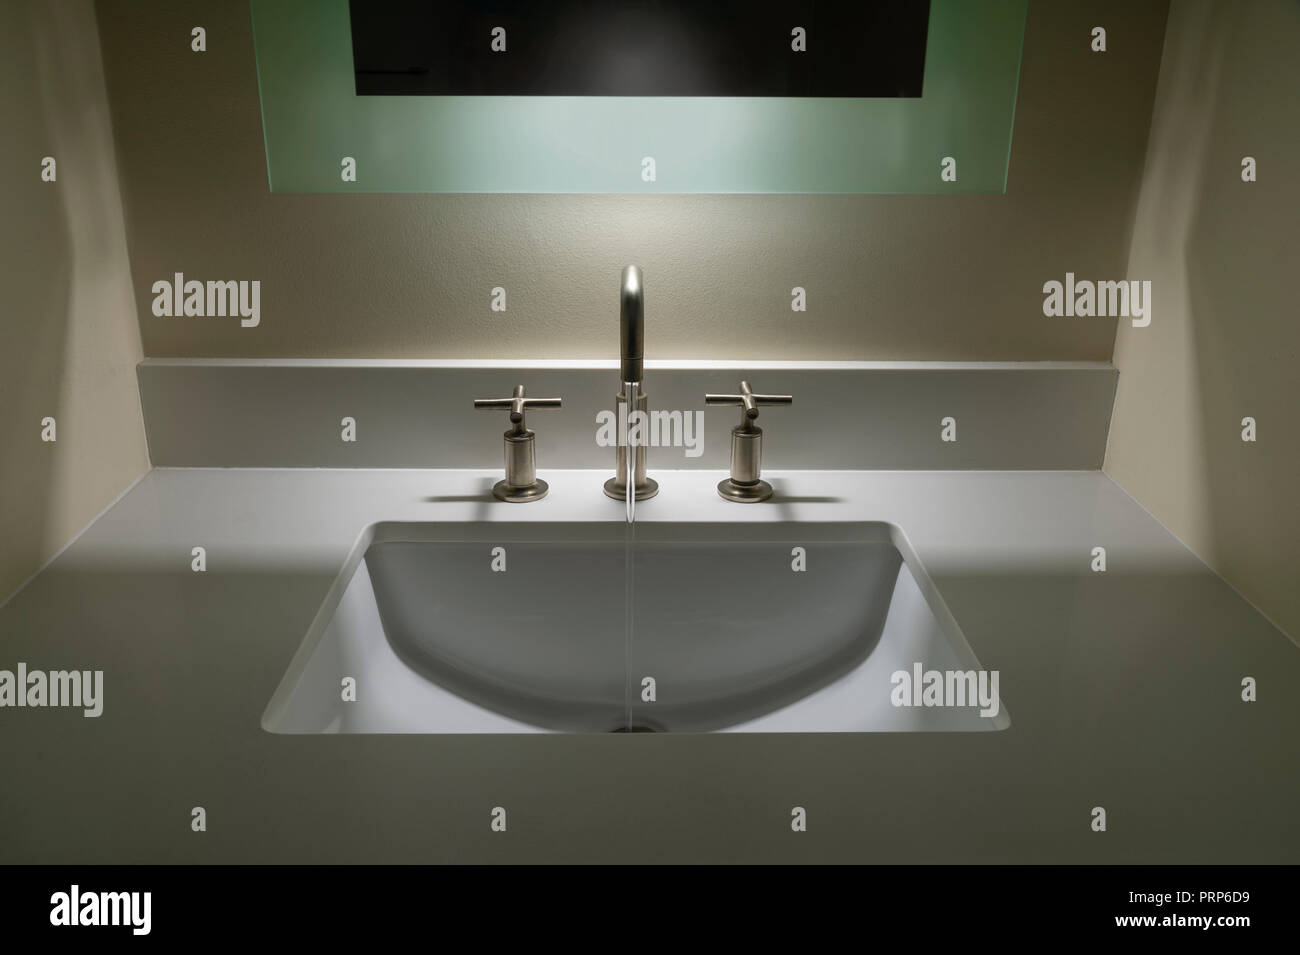 Modern Bathroom Sink With Water Running - Stock Image